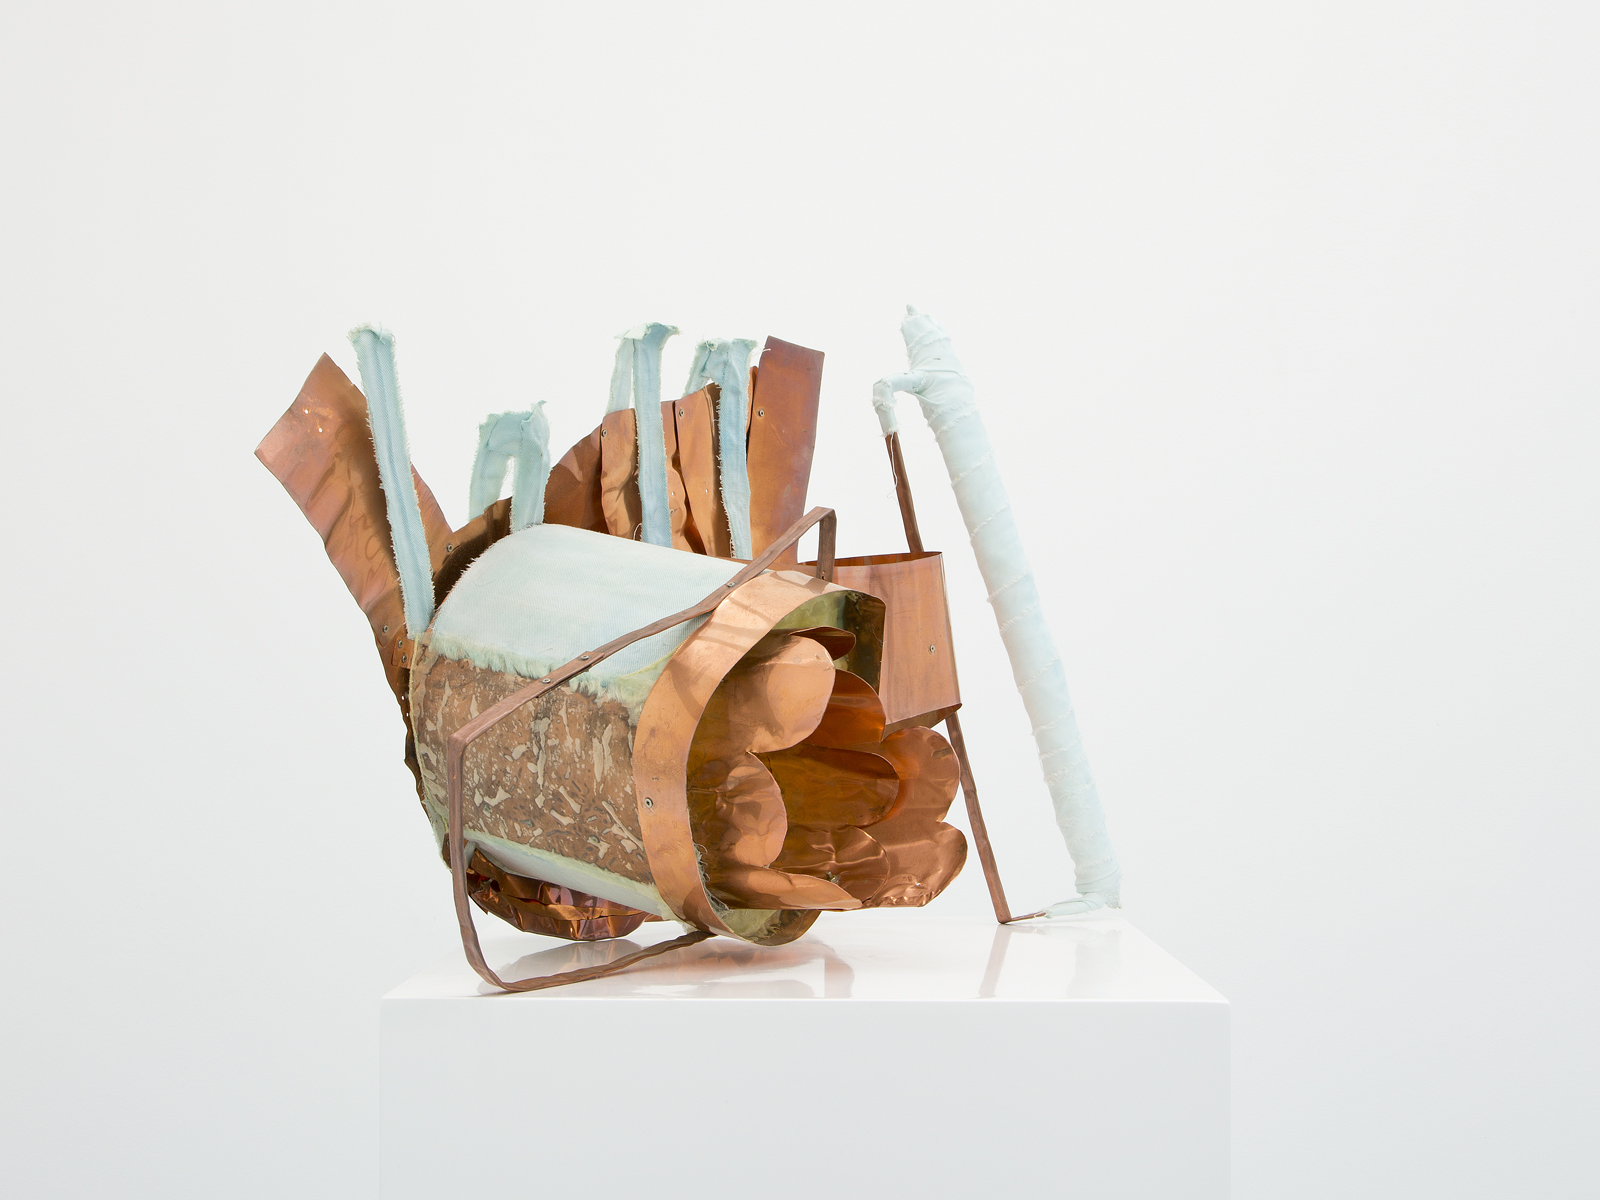 Miho Dohi, Buttai 35, 2015.  Copper plate, cloth and other, h40 x w55 x d30cm (15.74 x 21.65 x 11.81 in.)